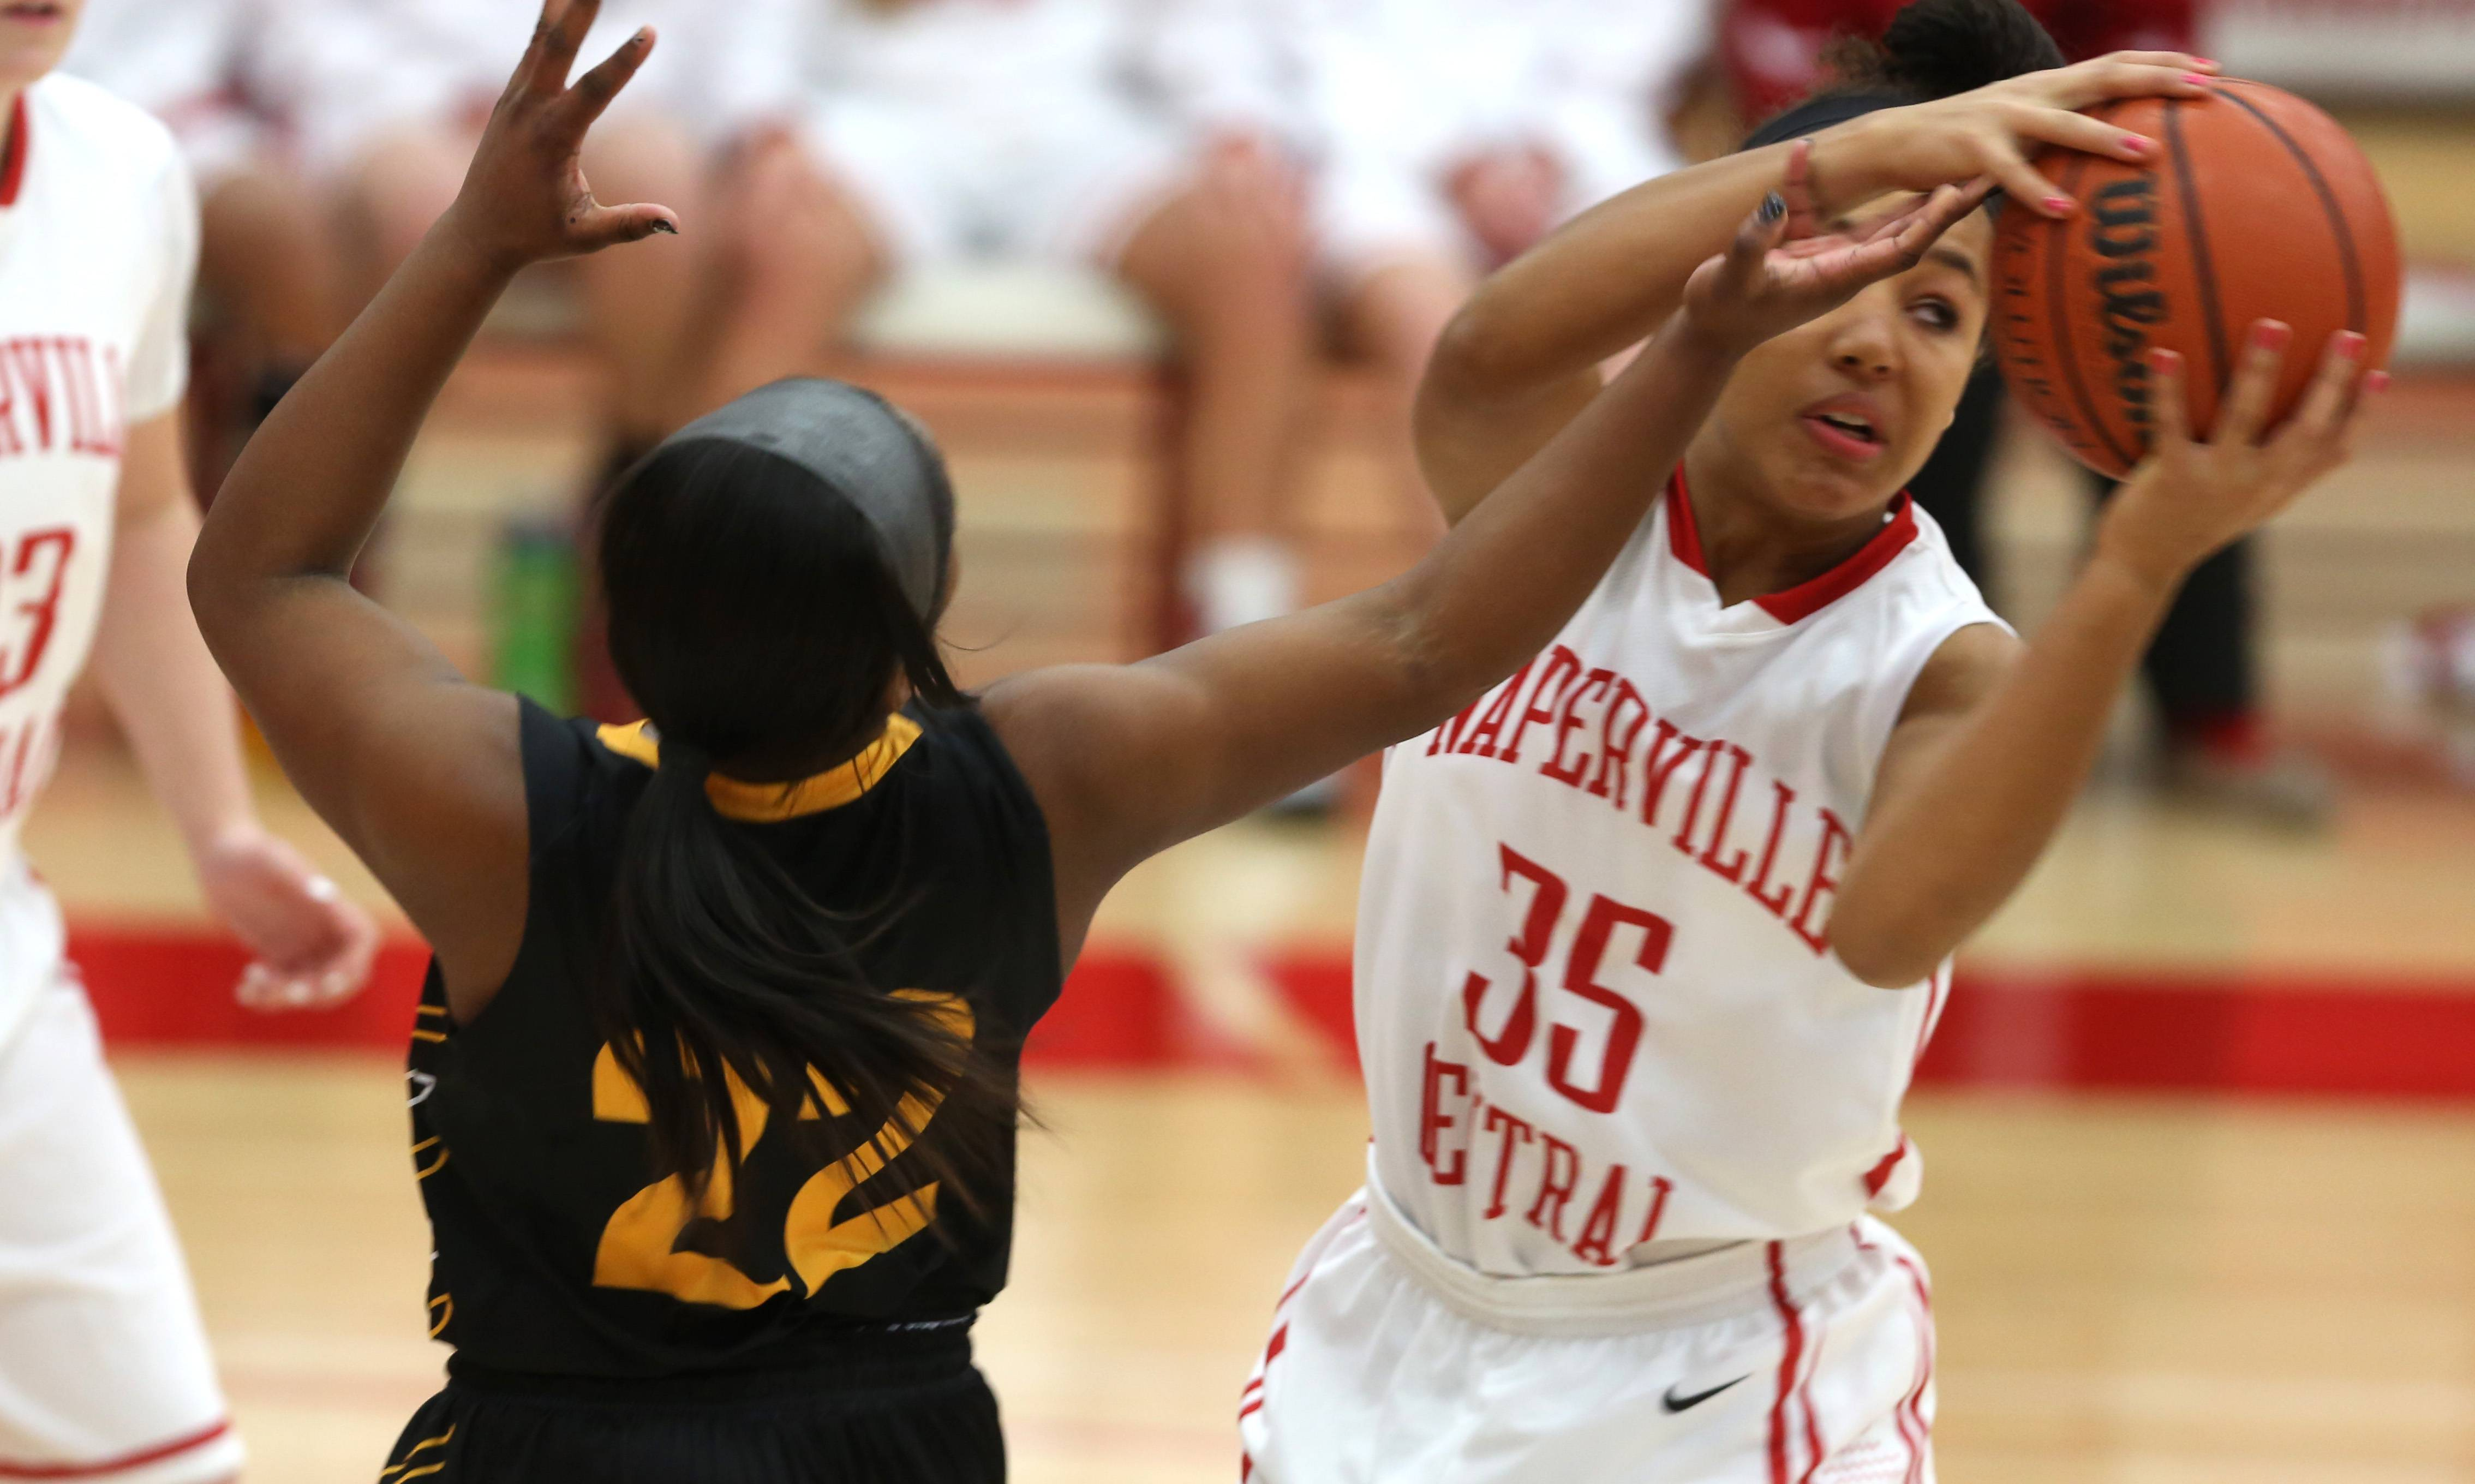 Naperville Central's Casey Smith, right, swipes the ball past Metea Valley's Taseandra Parker during the 2014 Naperville Central Tip-Off Tournament.